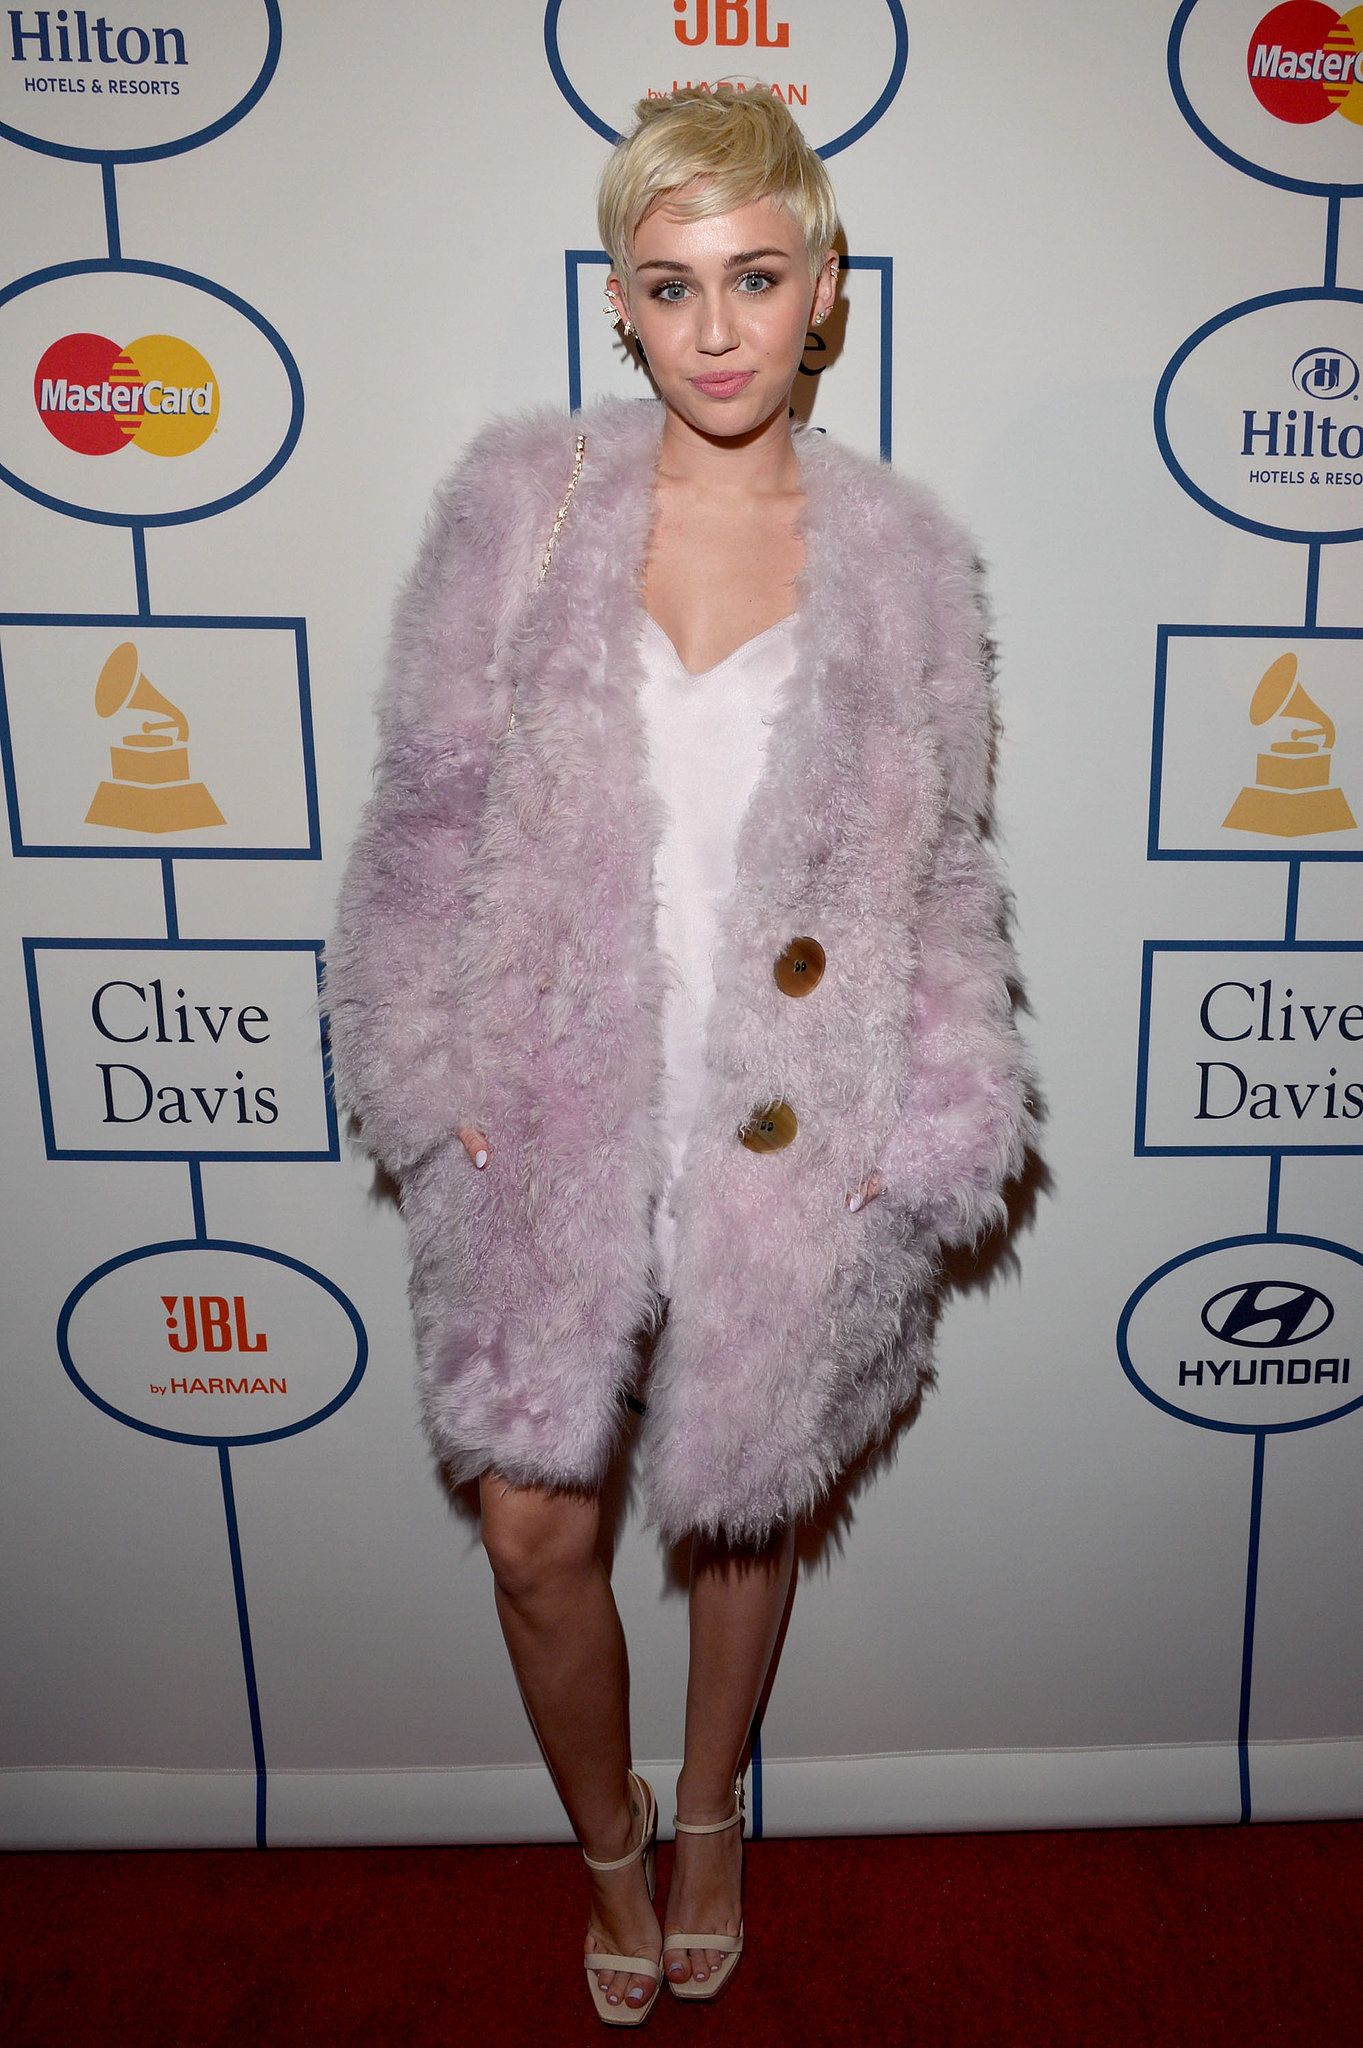 Miley Cyrus - 56th Annual Grammy Awards Pre-Grammy Gala and Salute to Industry Icons honoring Lucian Grainge in LA 25 January 2014 in  in Calvin Klein Collection Pre-Fall 2014 Dress & Coat, Chanel No.5 Perfume Bottle Bag, Calvin Klein Heels